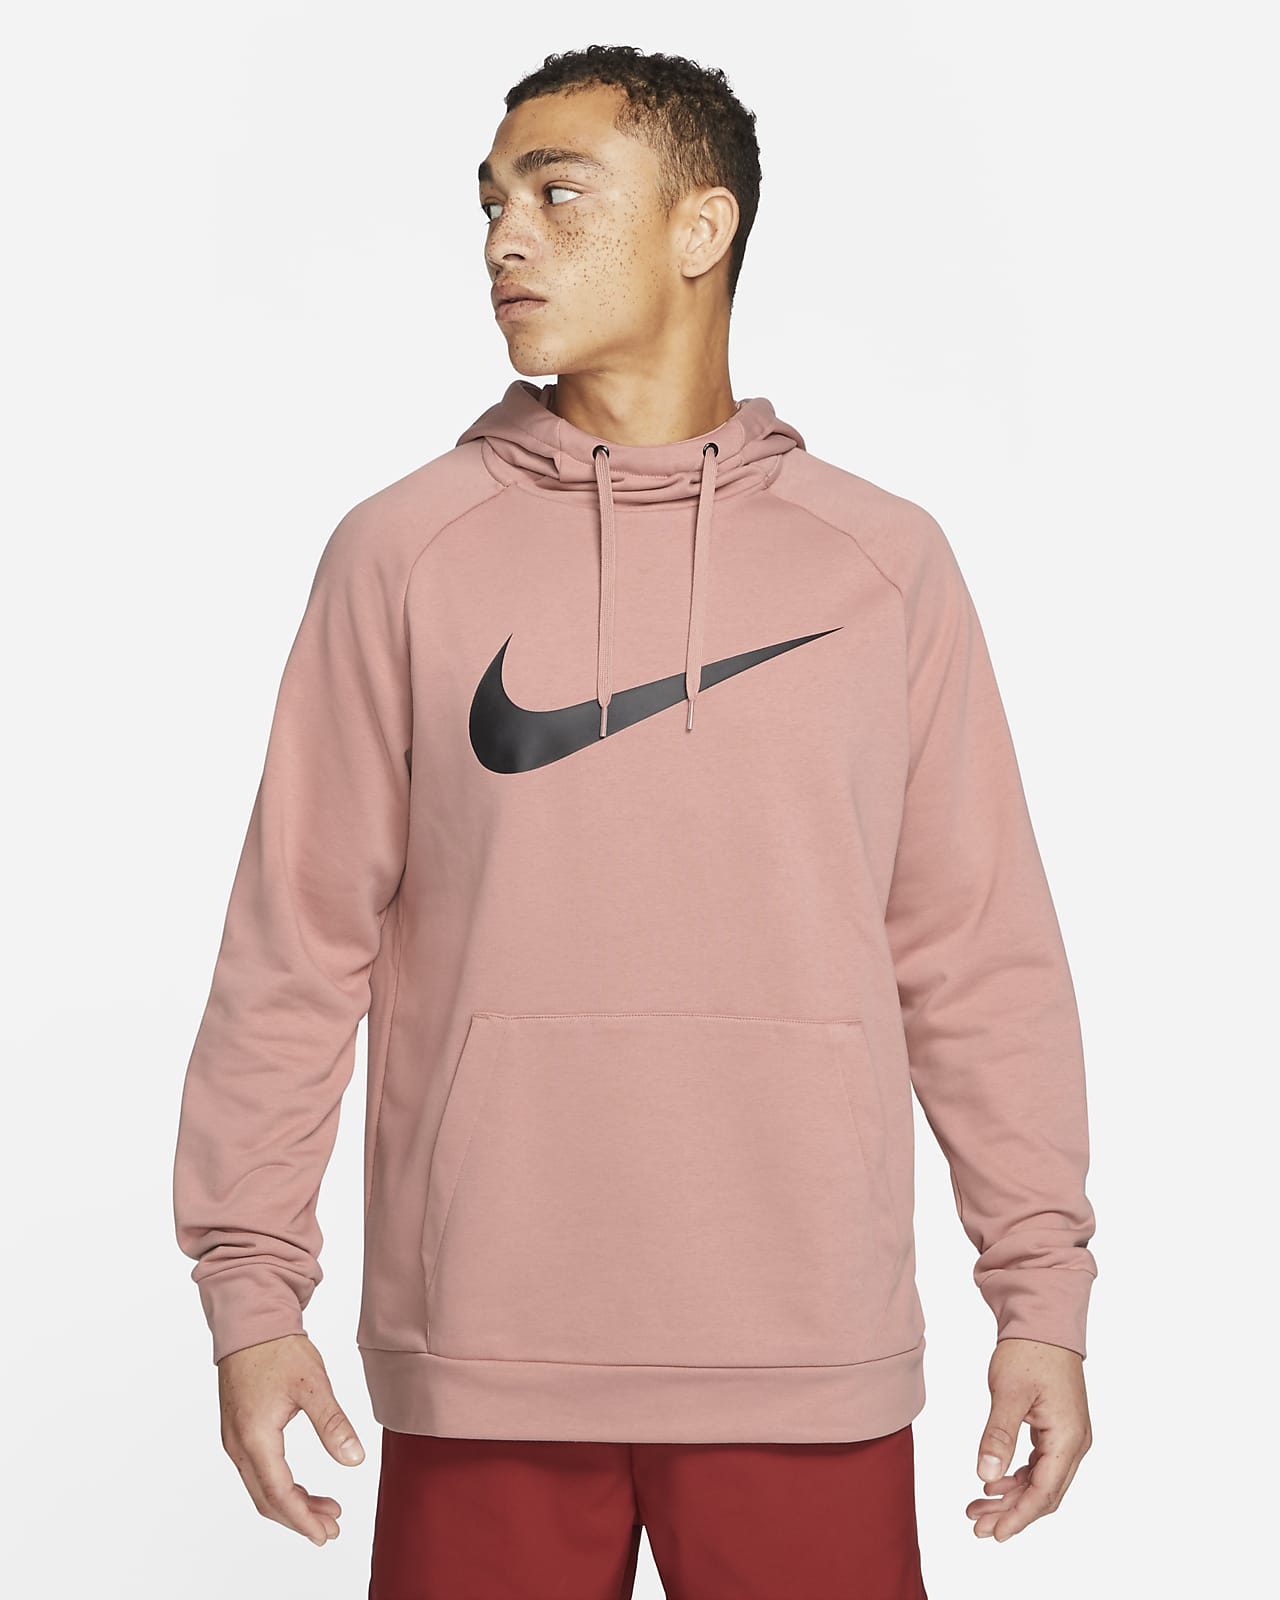 Nike Dri-FIT Men's Pullover Training Hoodie